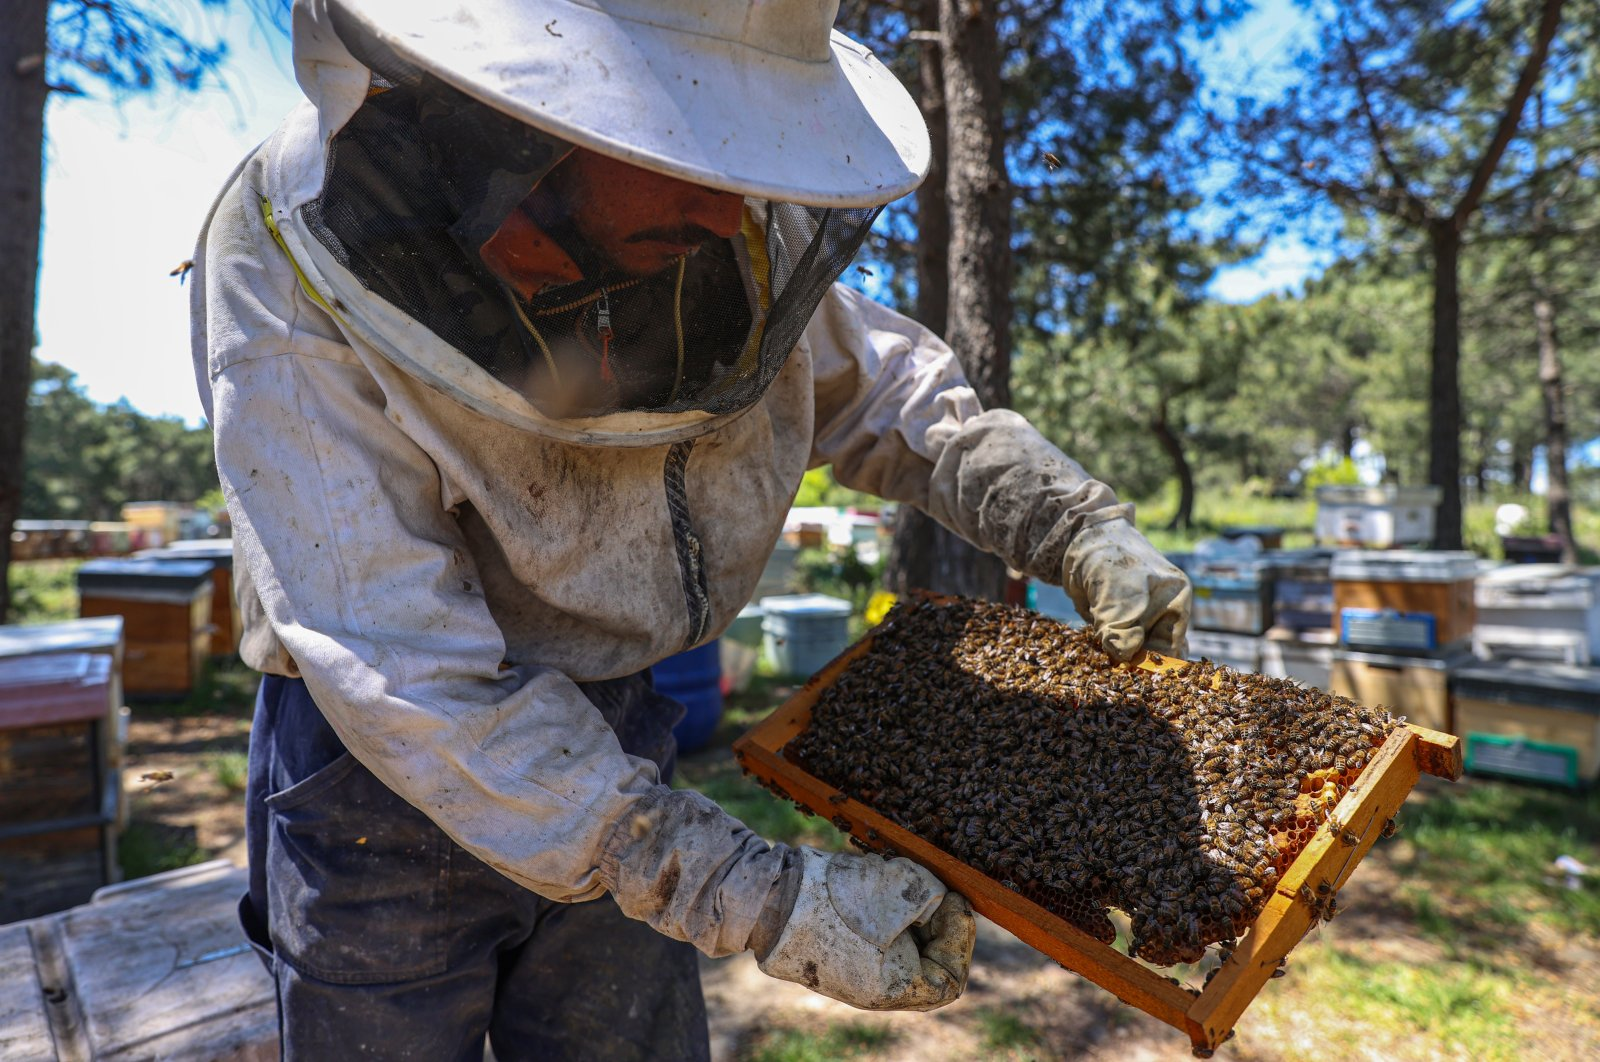 A beekeper tends the bees, in Istanbul, Turkey, May 23, 2021. (AA PHOTO)